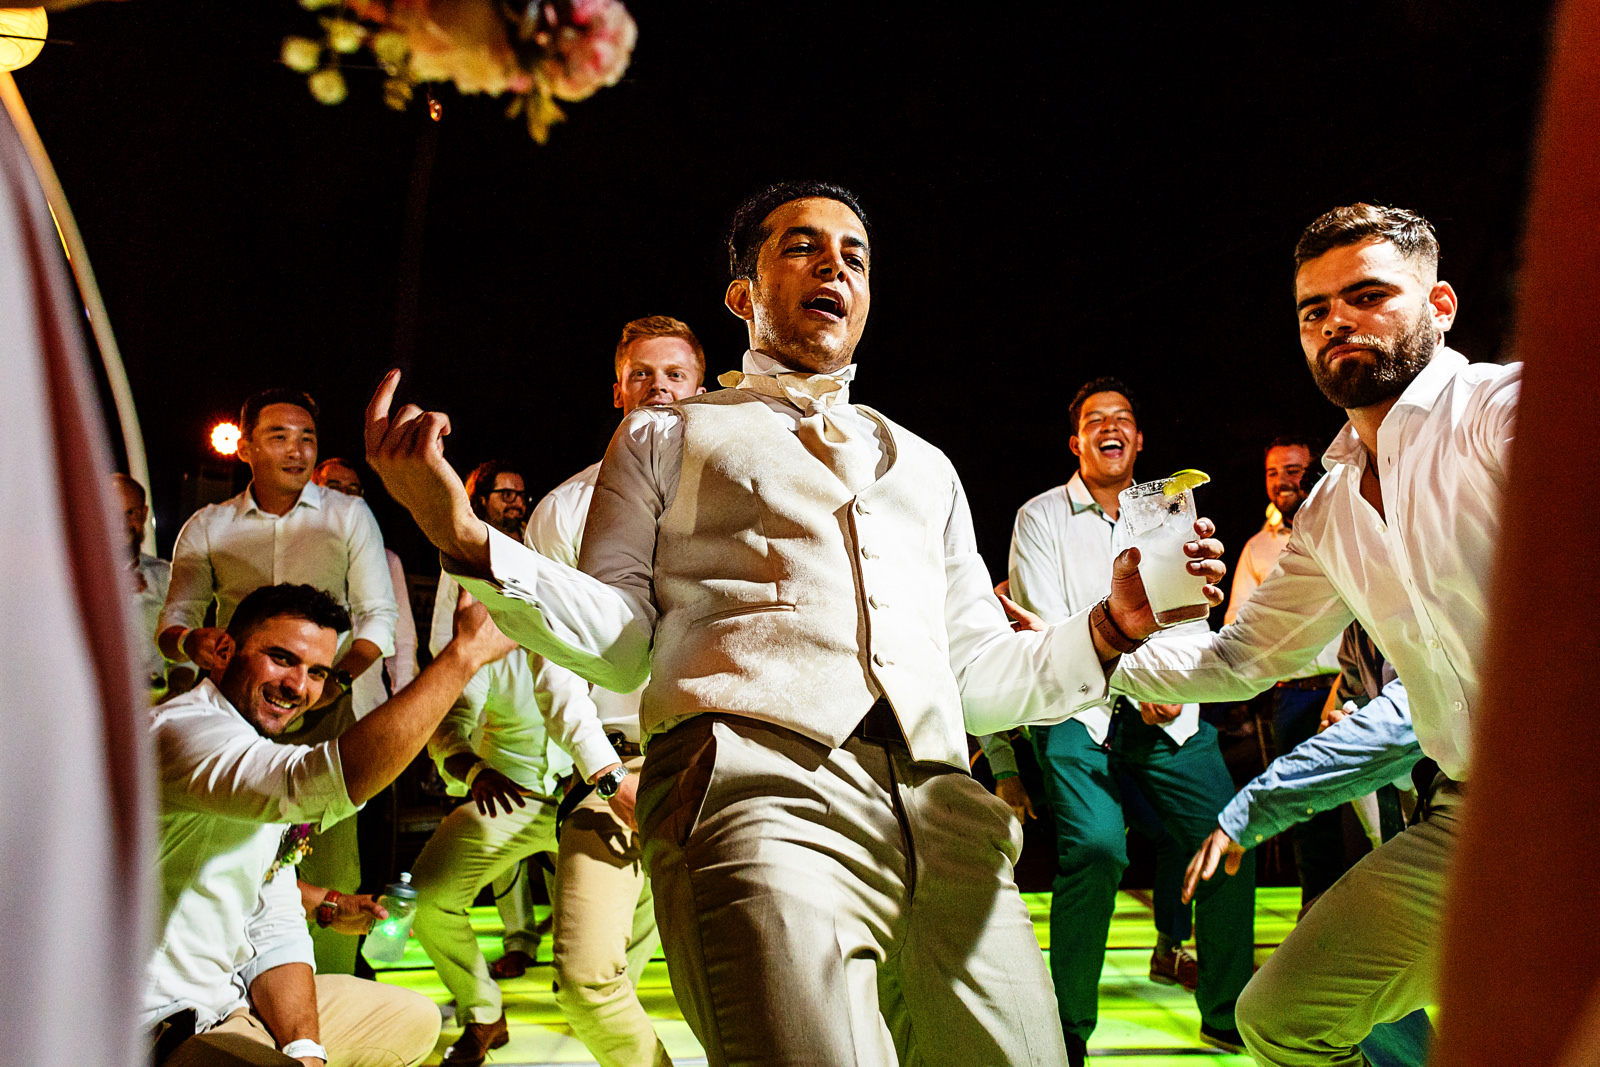 Groom and his gang giving it all in the dance floor for a dance battle.